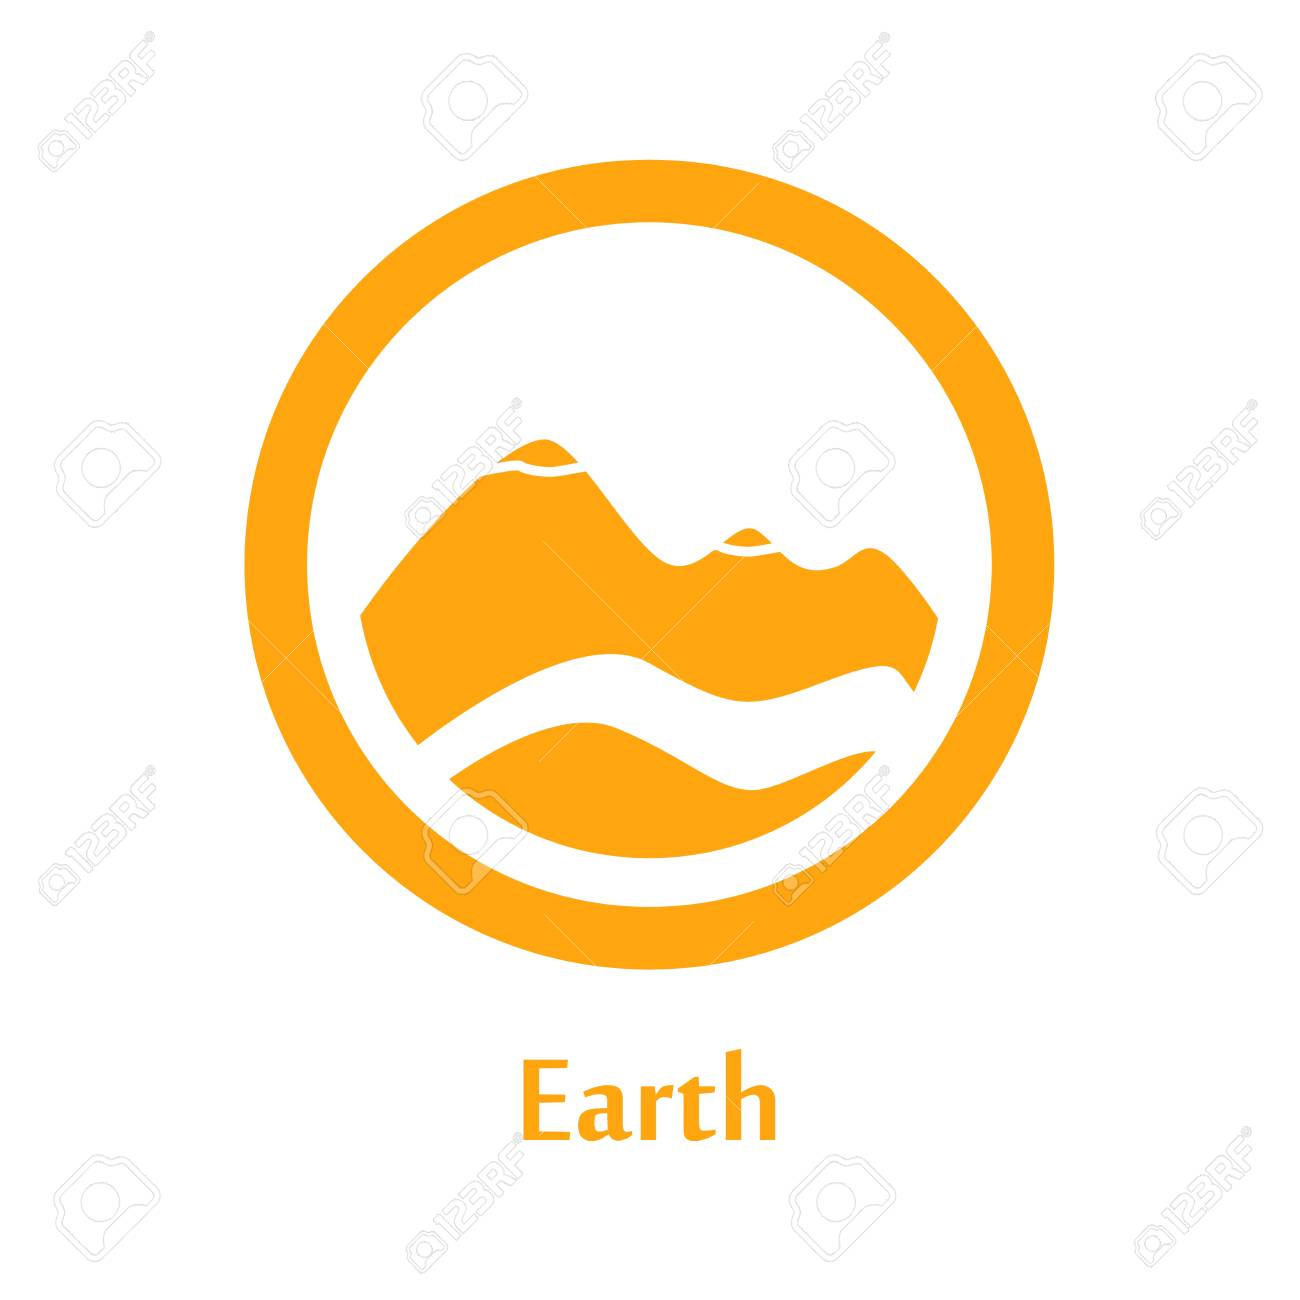 A Vector Illustration Of Earth Element Icon, Line Round Symbols ...